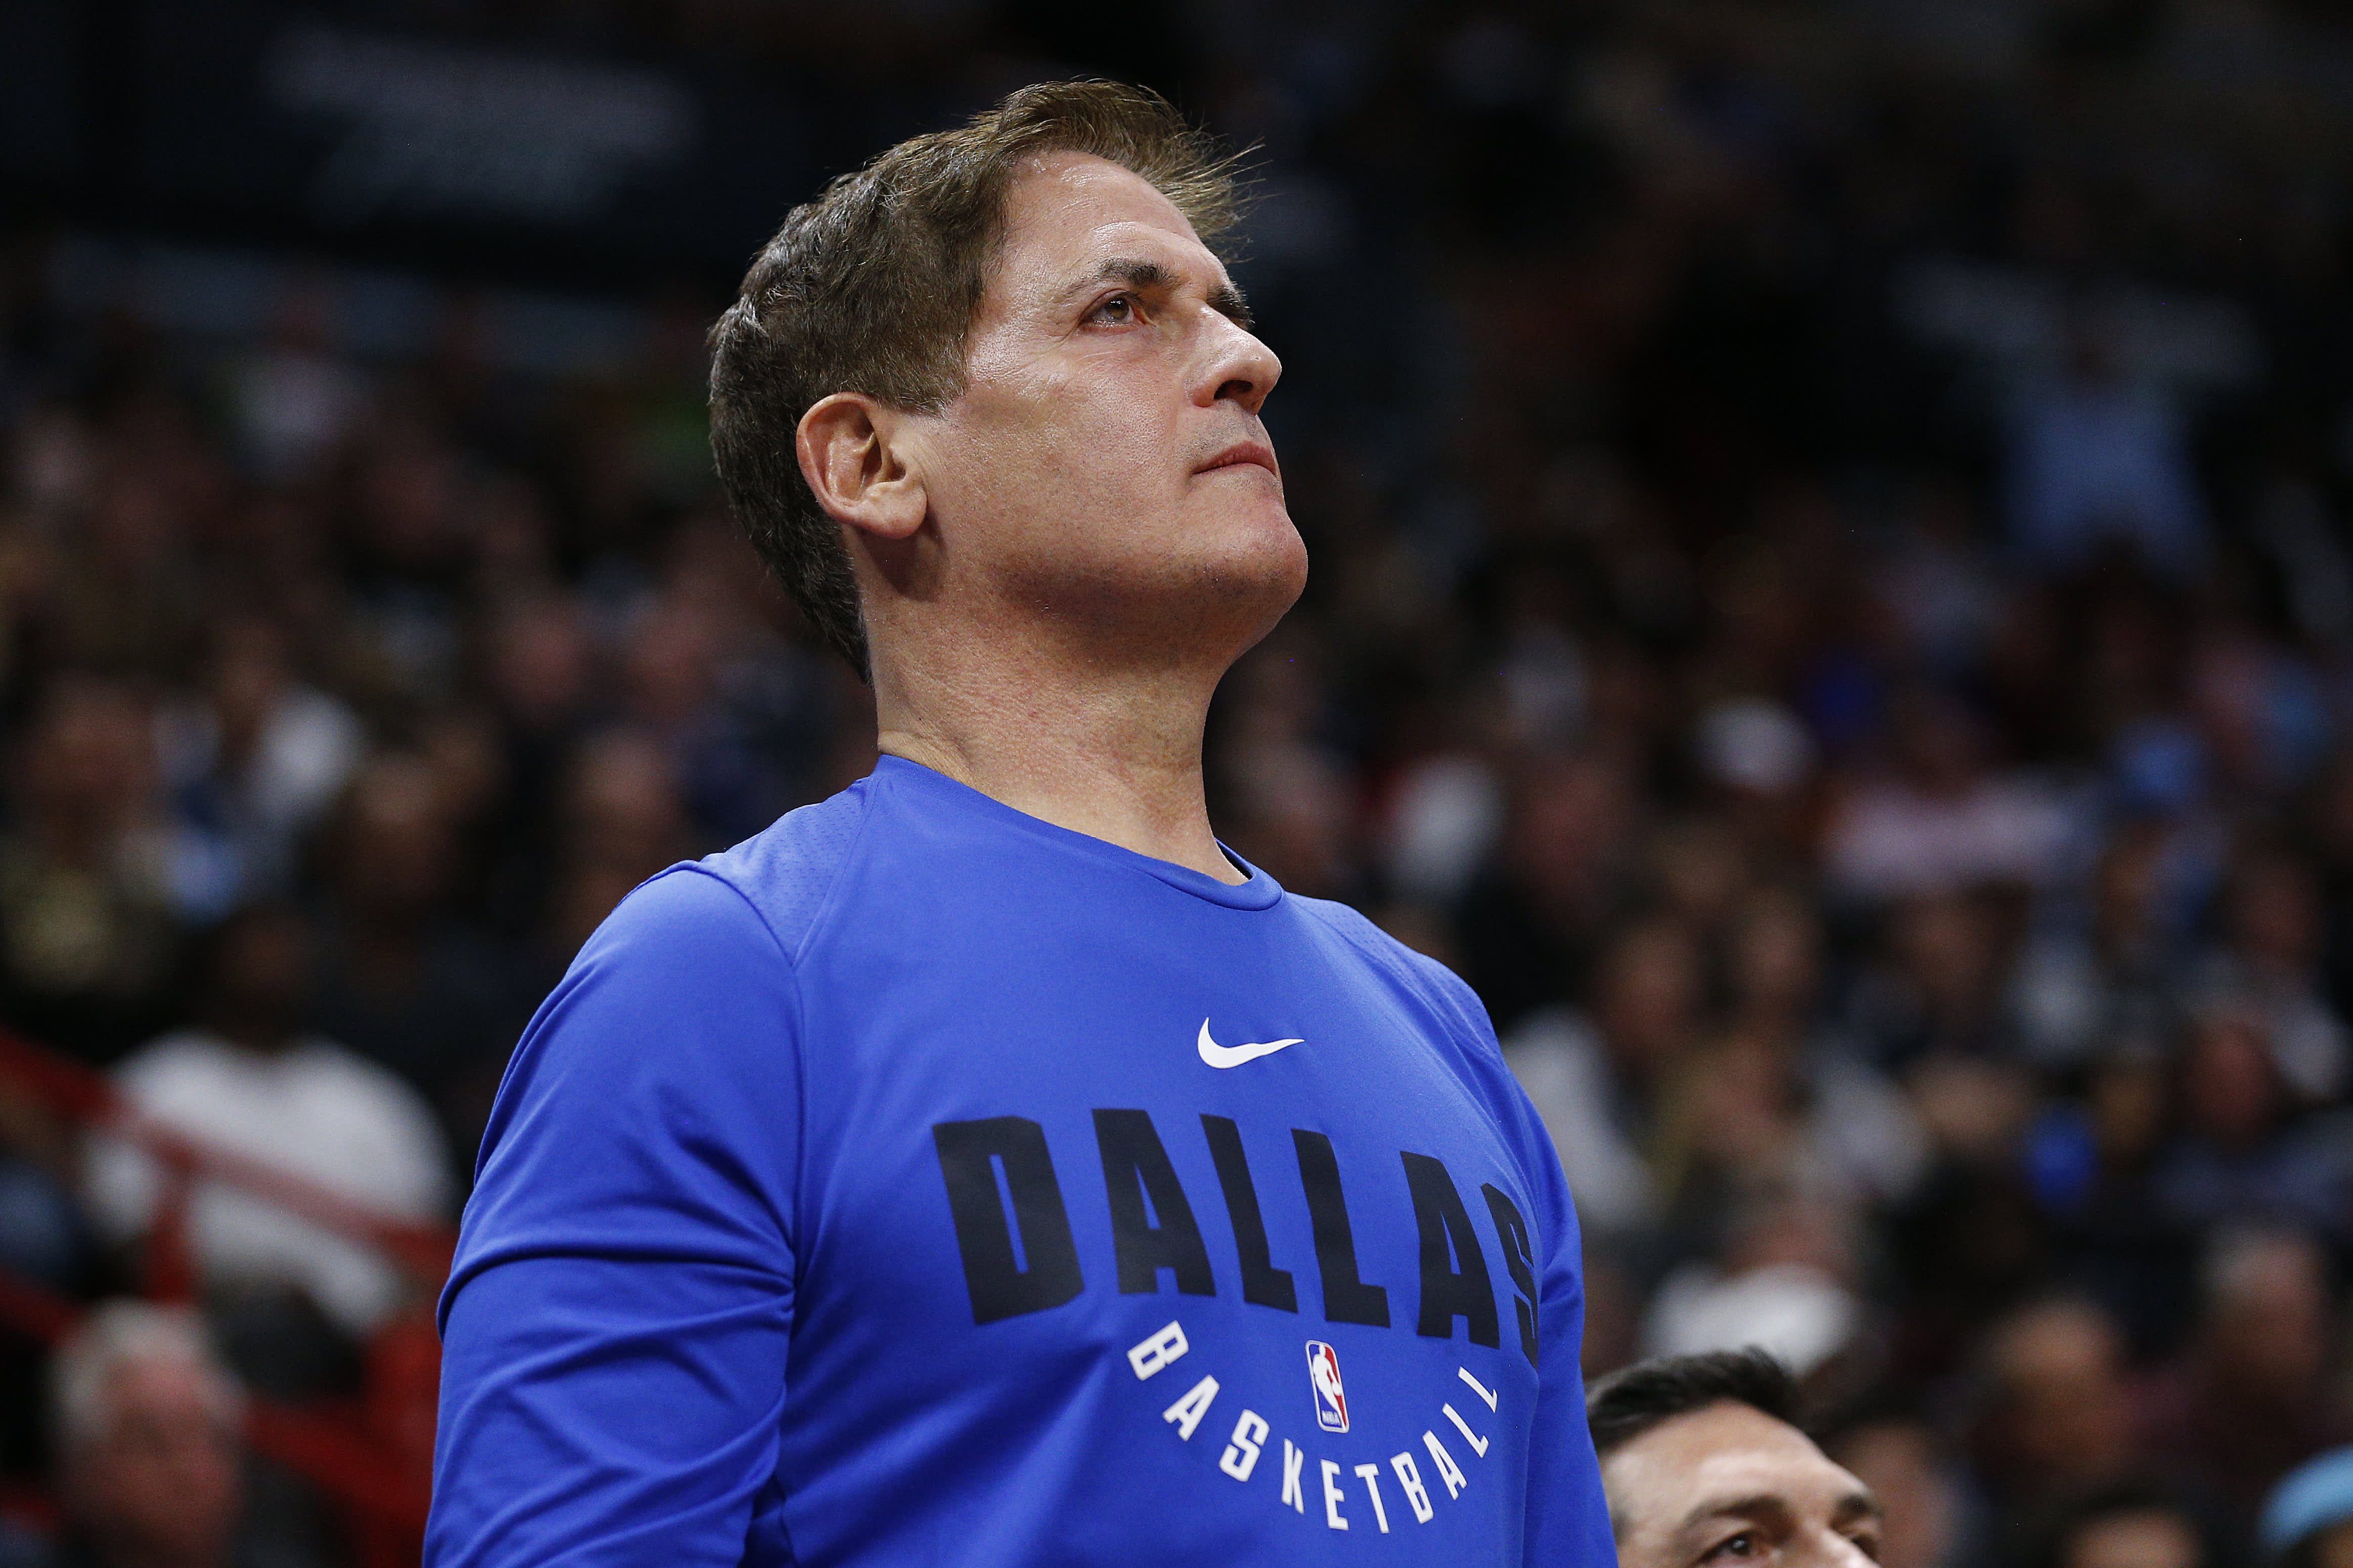 Mark Cuban: The Dallas Mavericks are thinking about 'turning our tickets into NFTs'